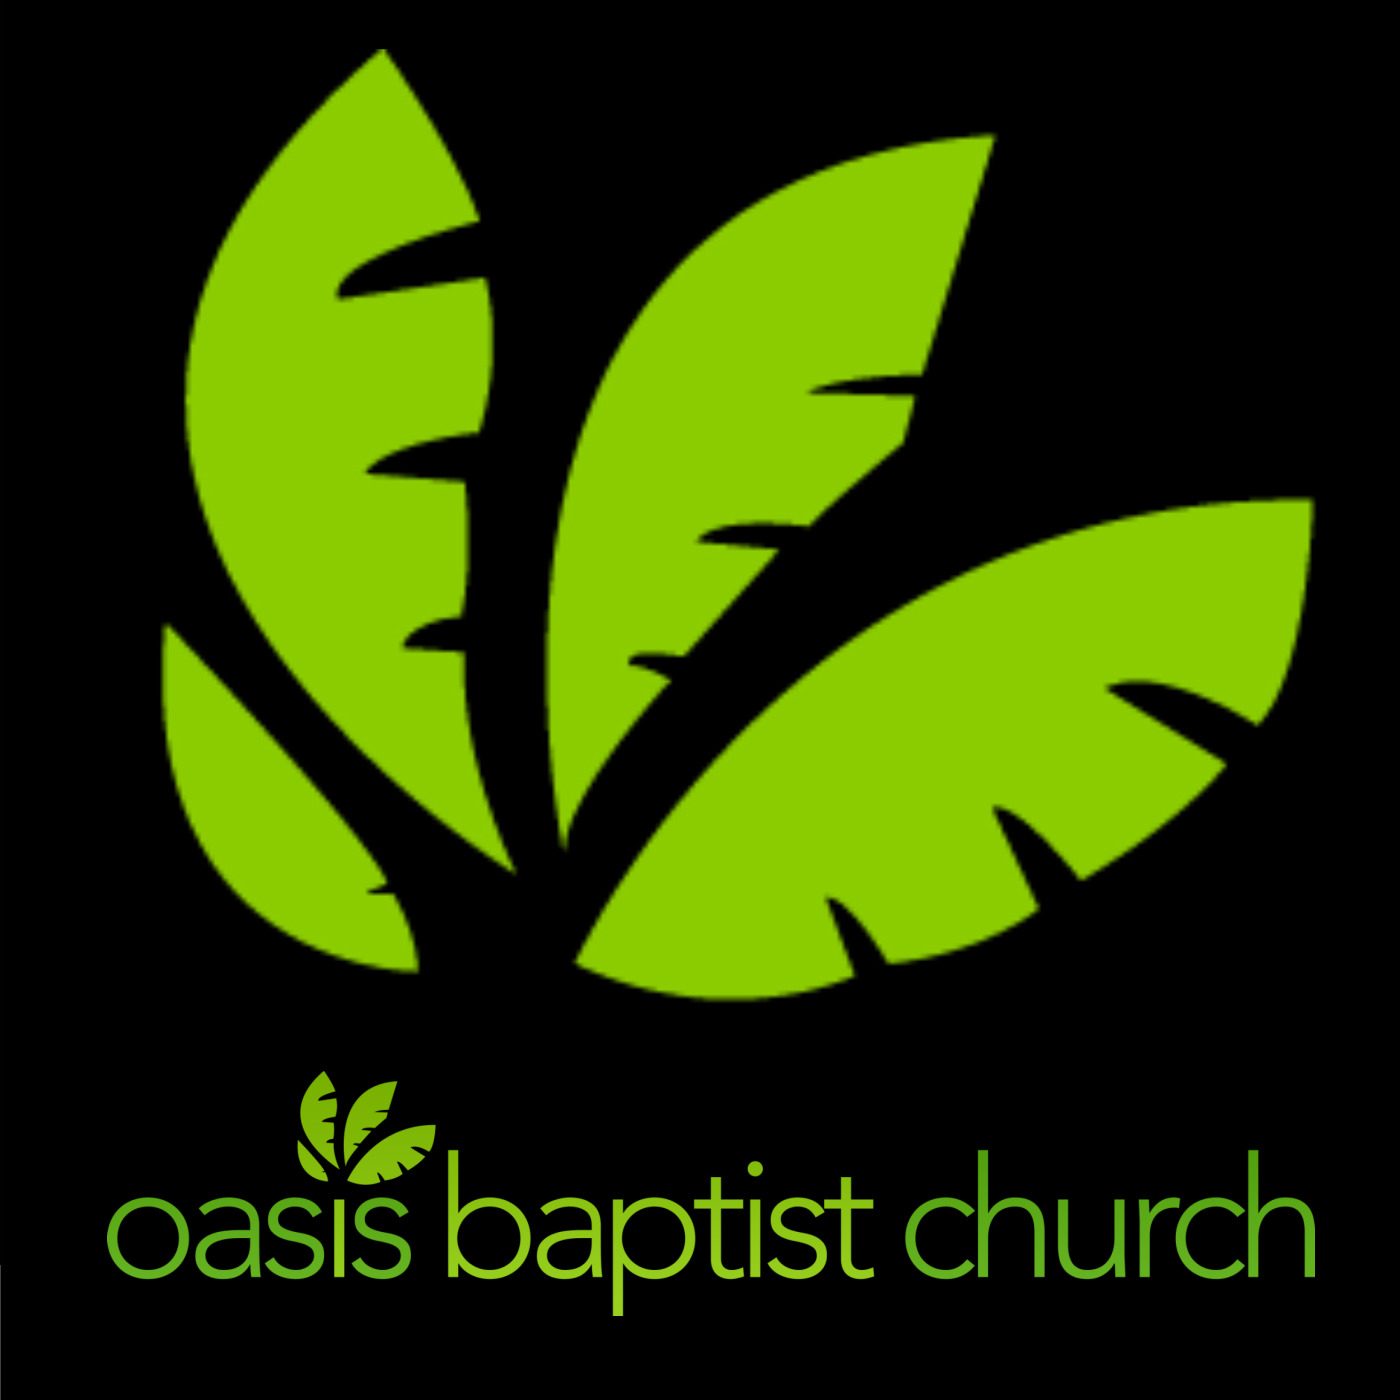 Oasis Baptist Church